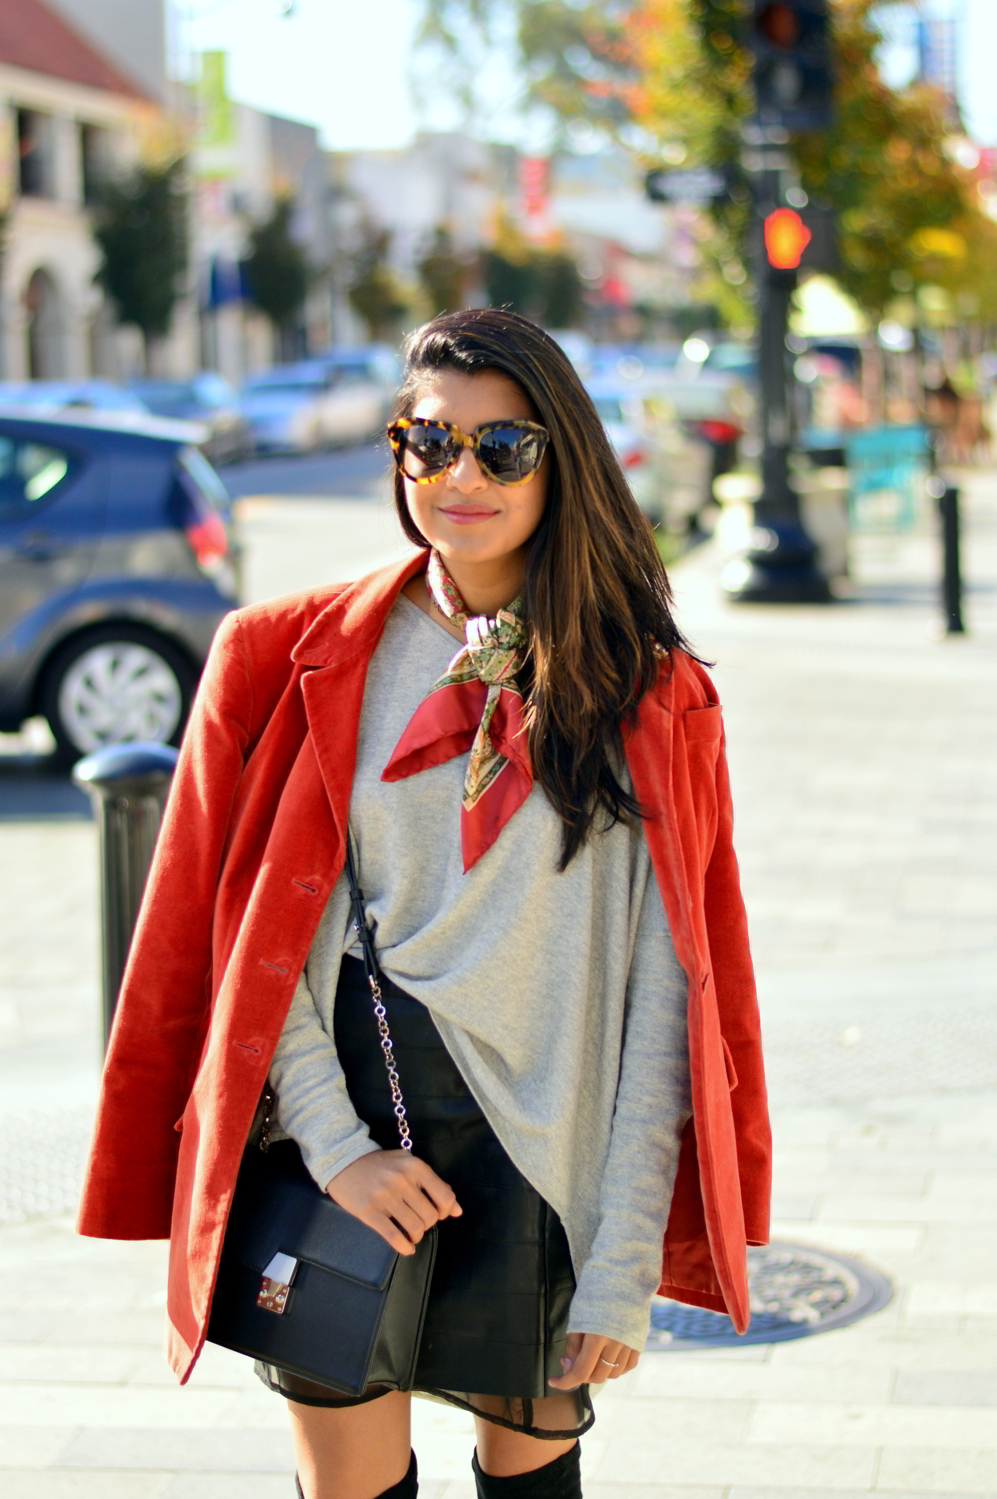 transitional-spring-style-textures-suede-leather-skirt-knits-blogger-layers-outfit 2